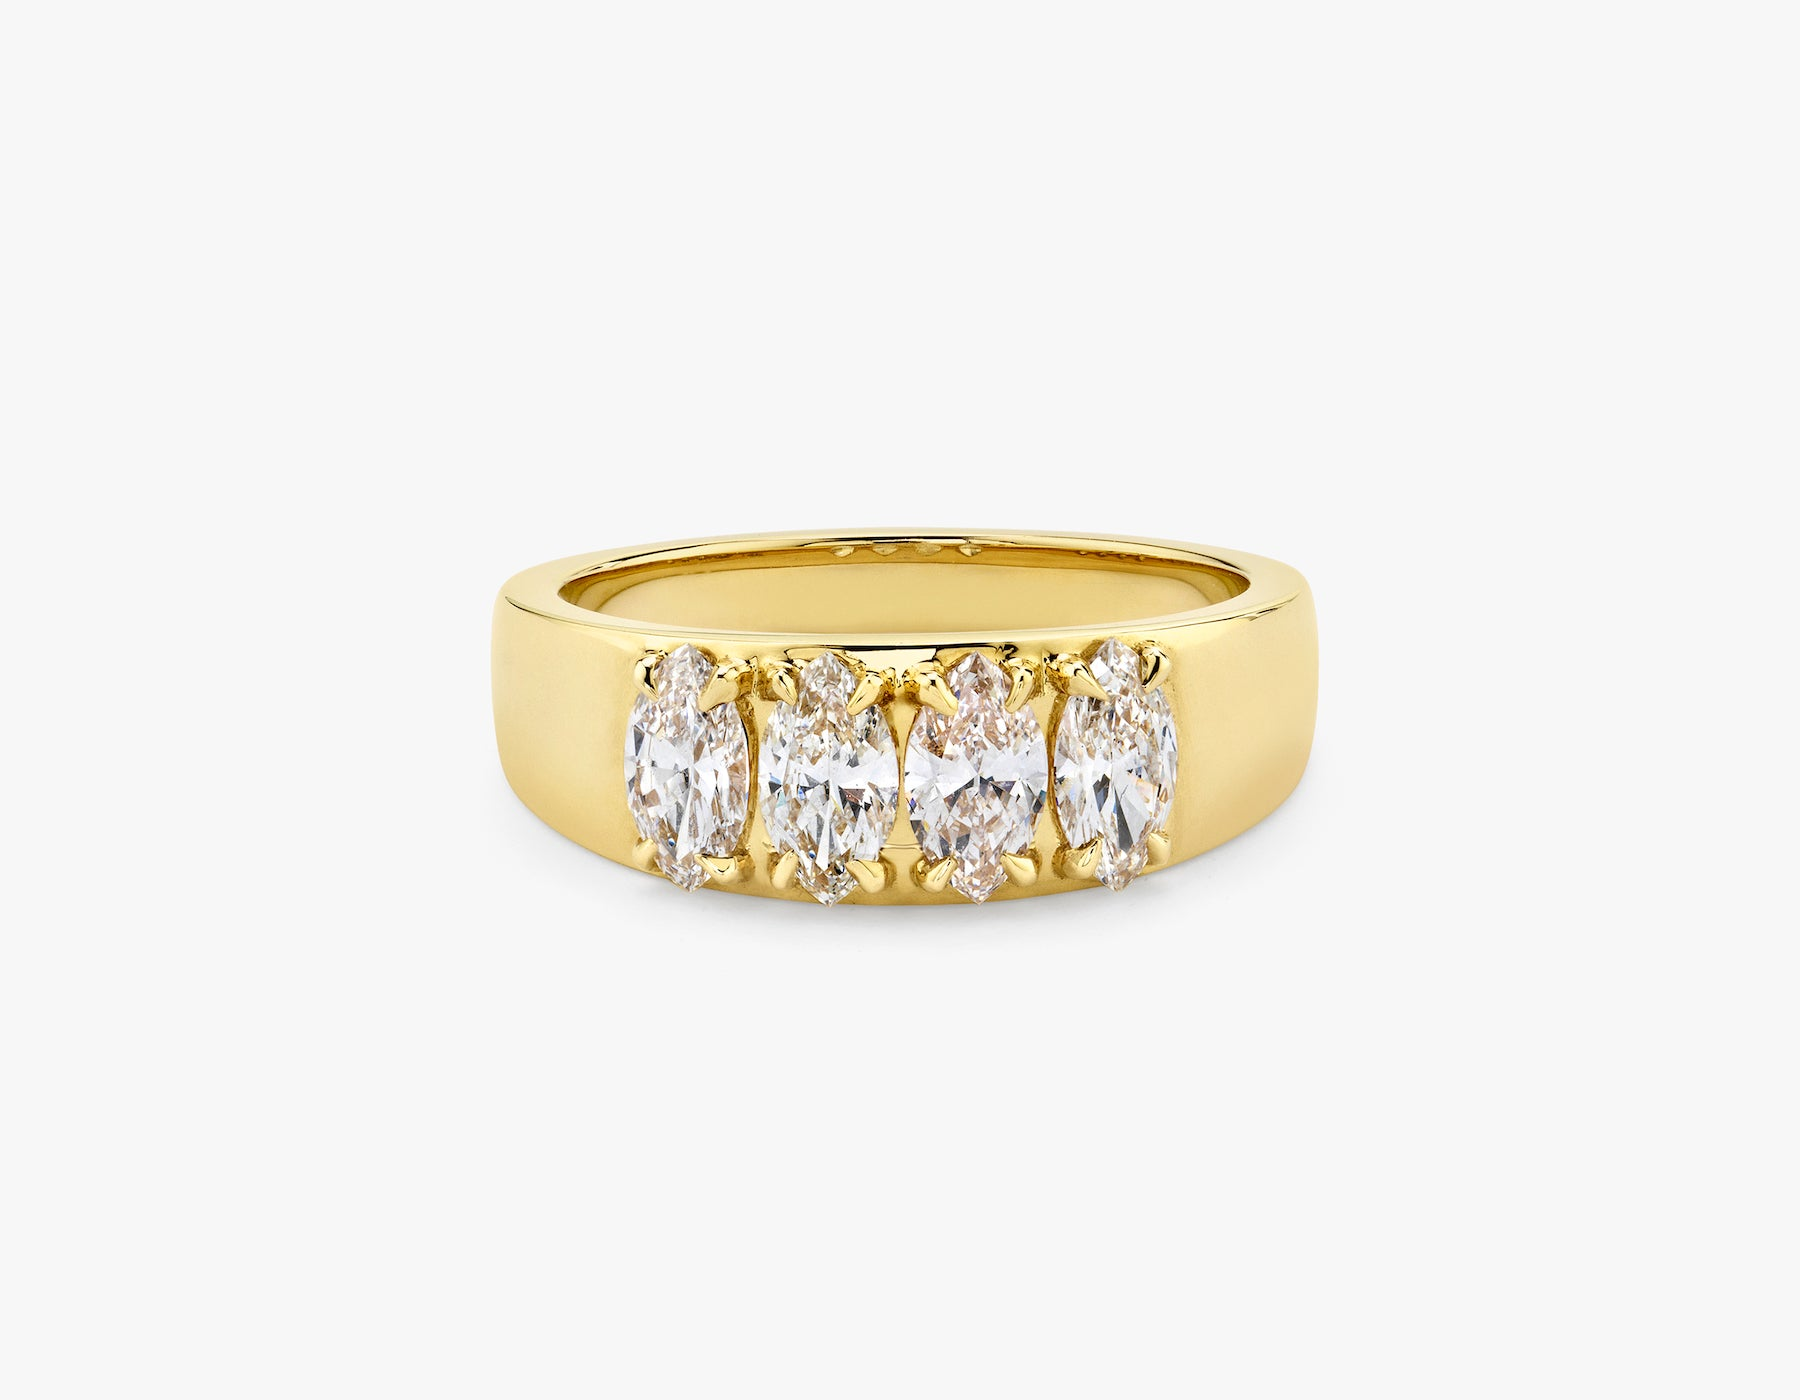 Vrai simple minimalist marquise Diamond Tetrad Band .25ct Marquise Diamond Ring, 14K Yellow Gold